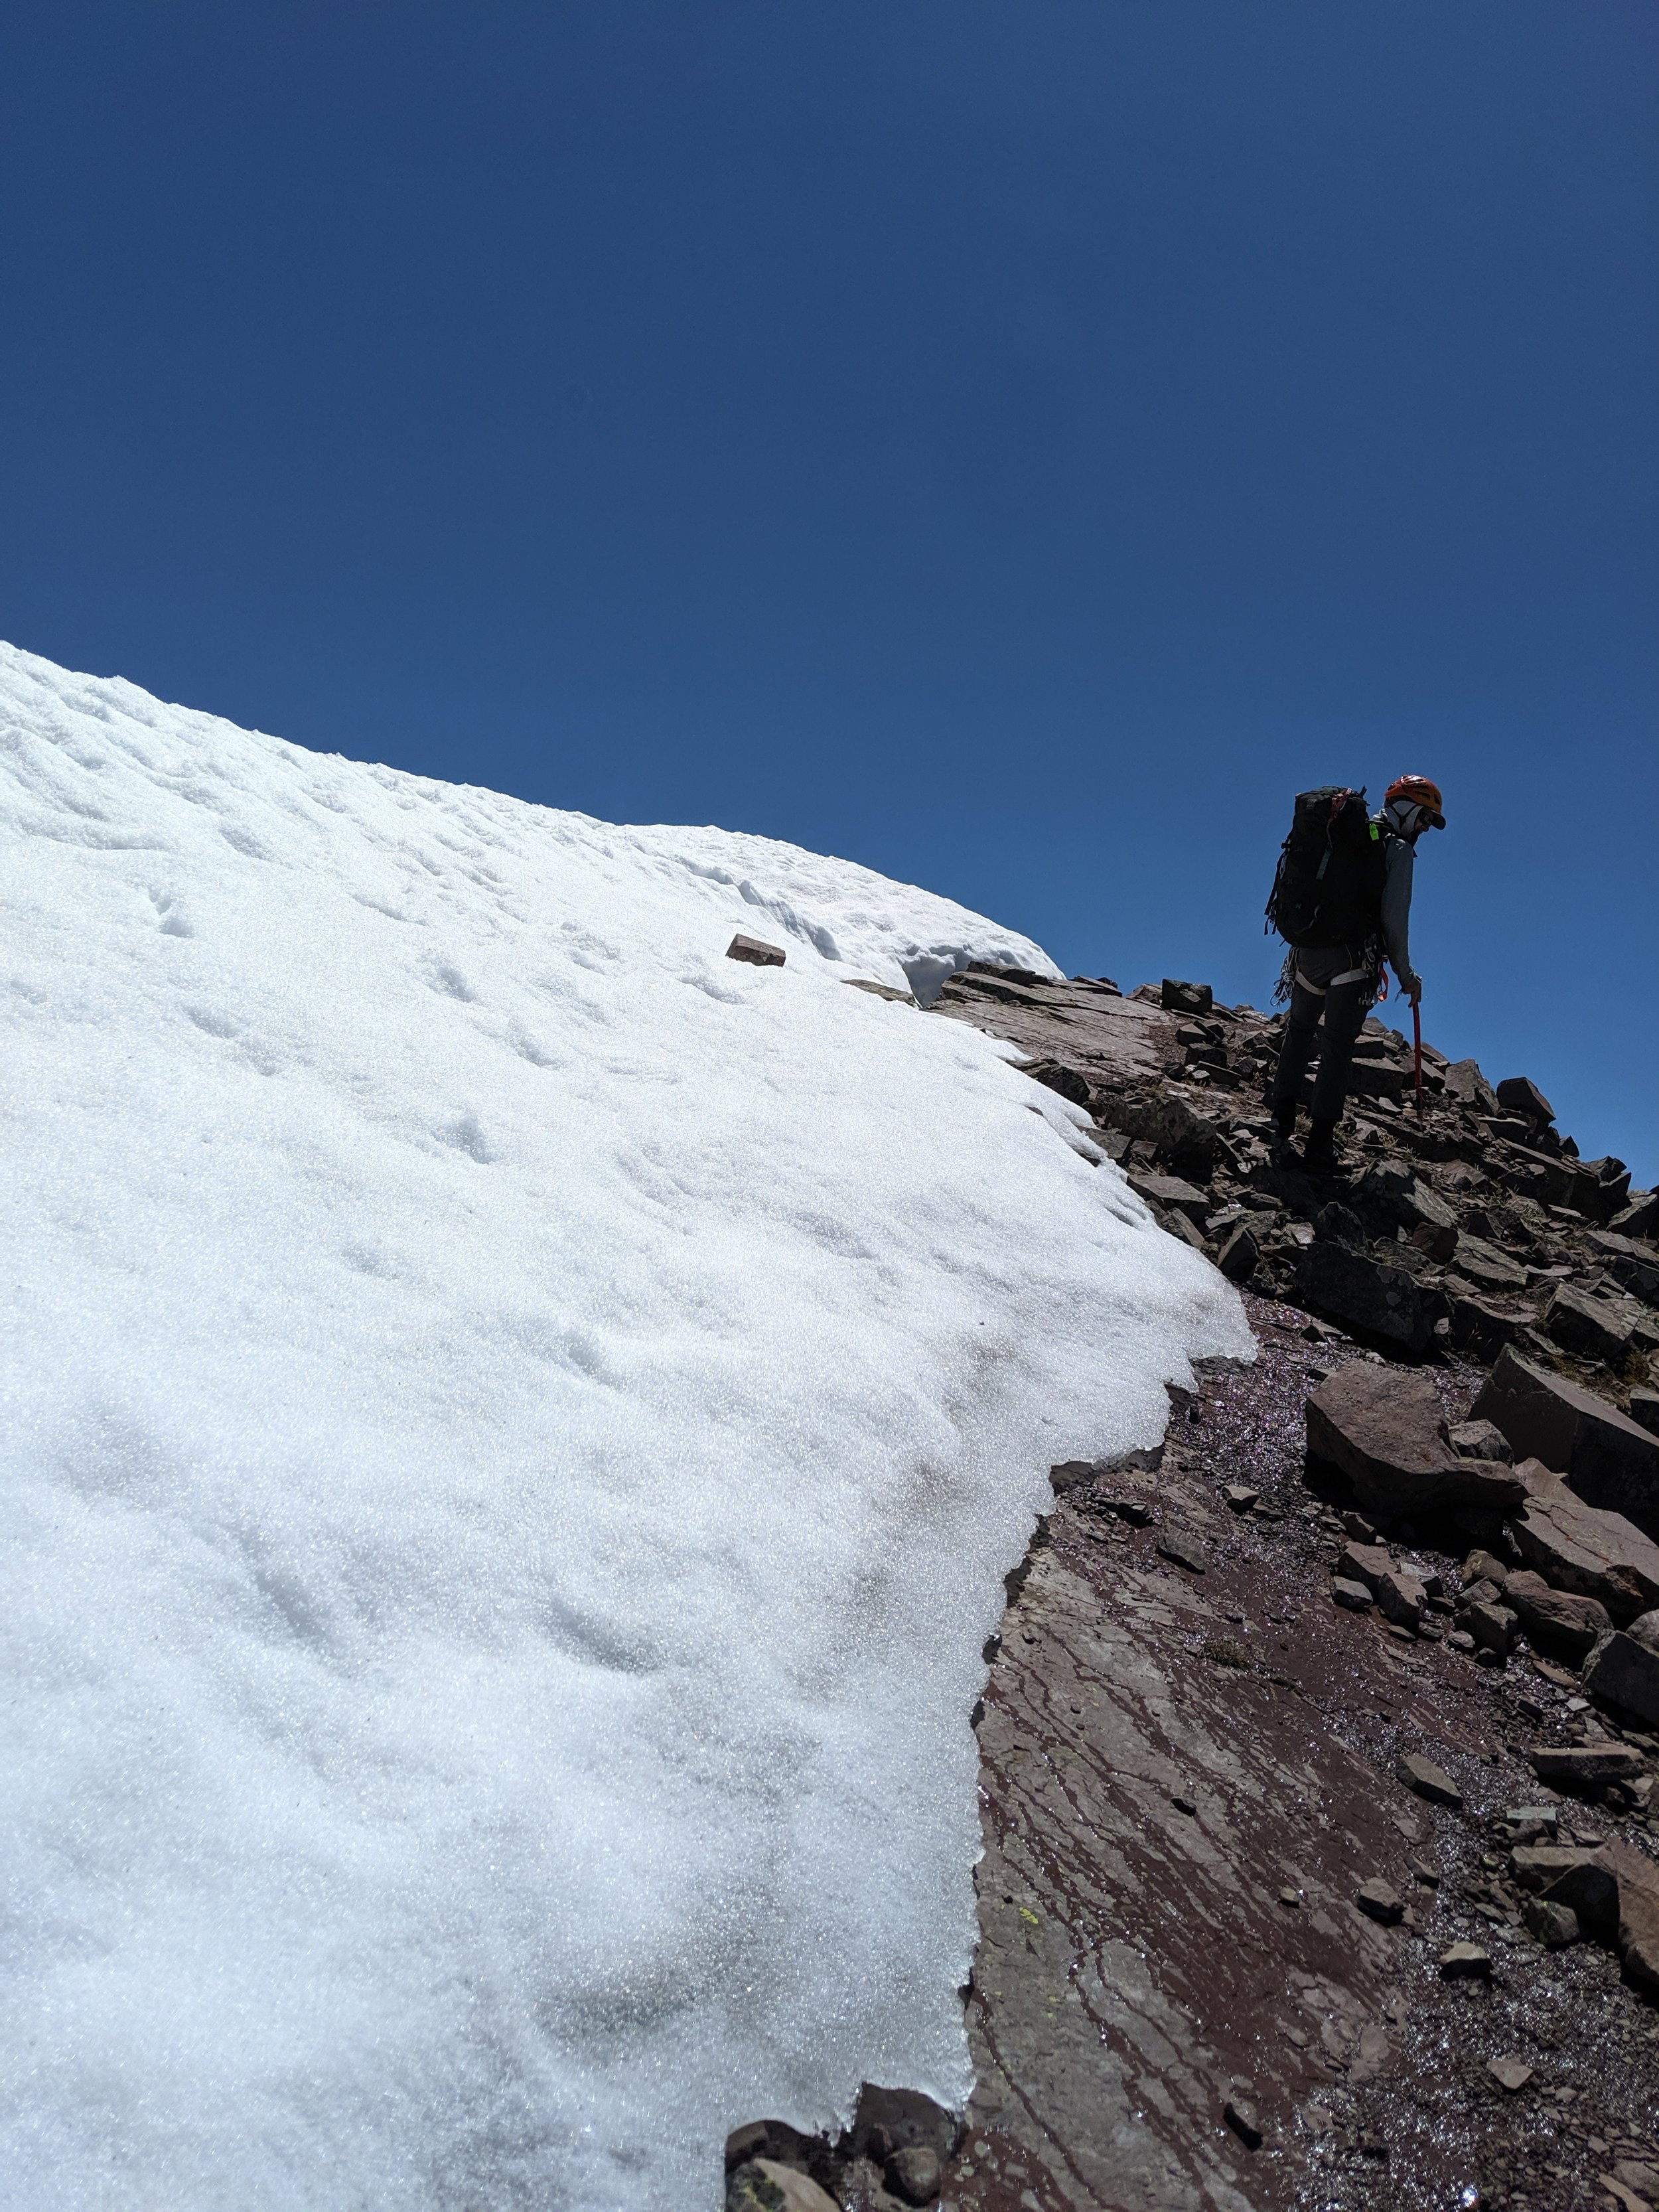 Love for the mountains and of course the icing, the summit.